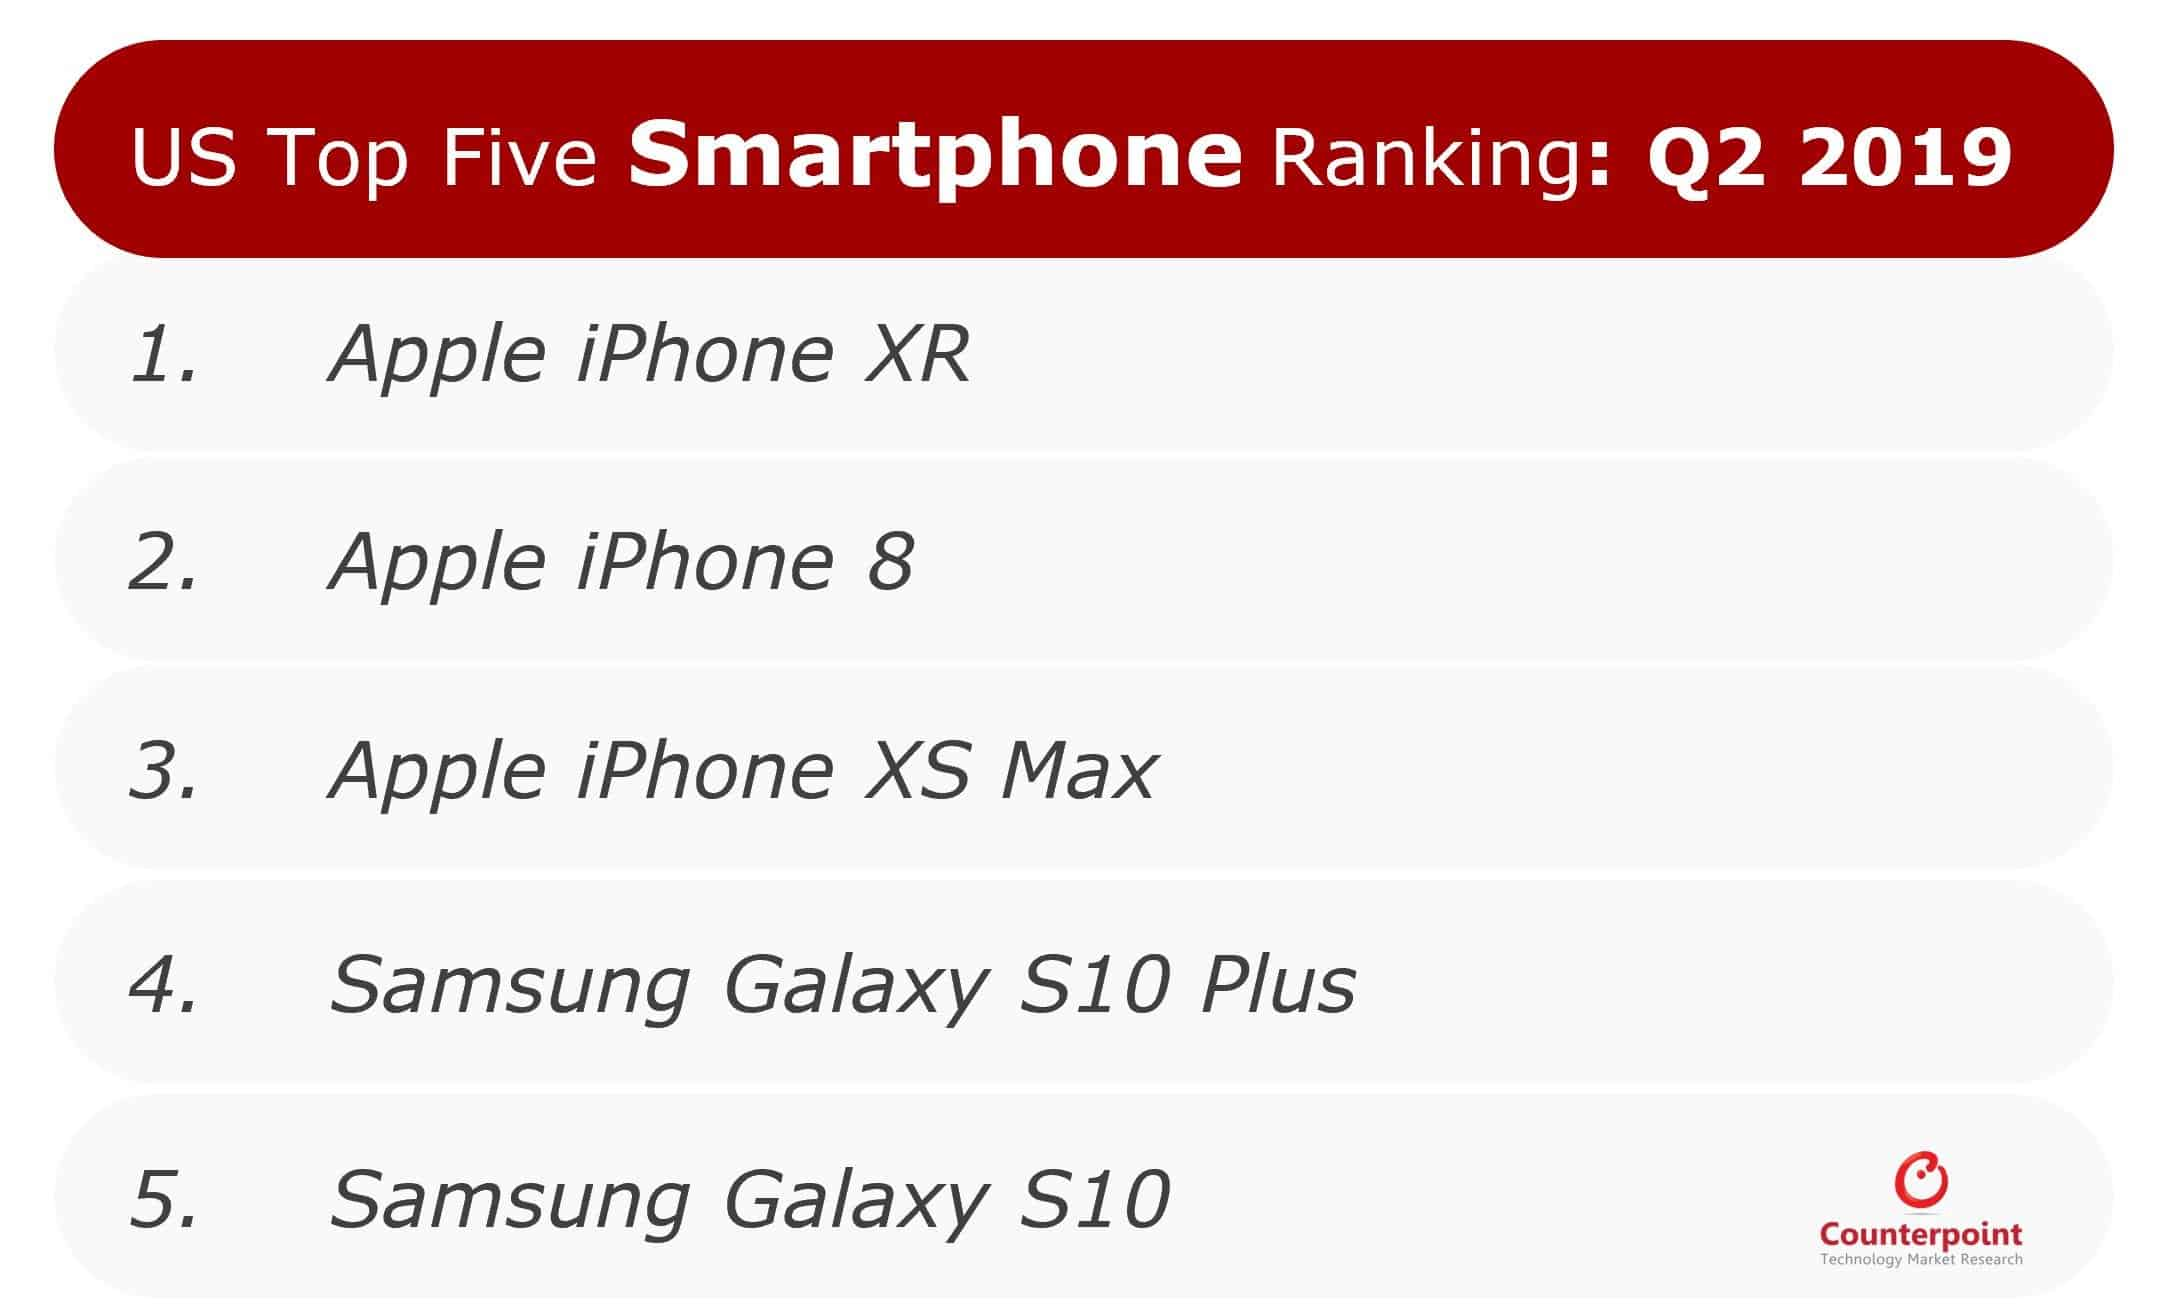 counterpoint research most popular smartphones